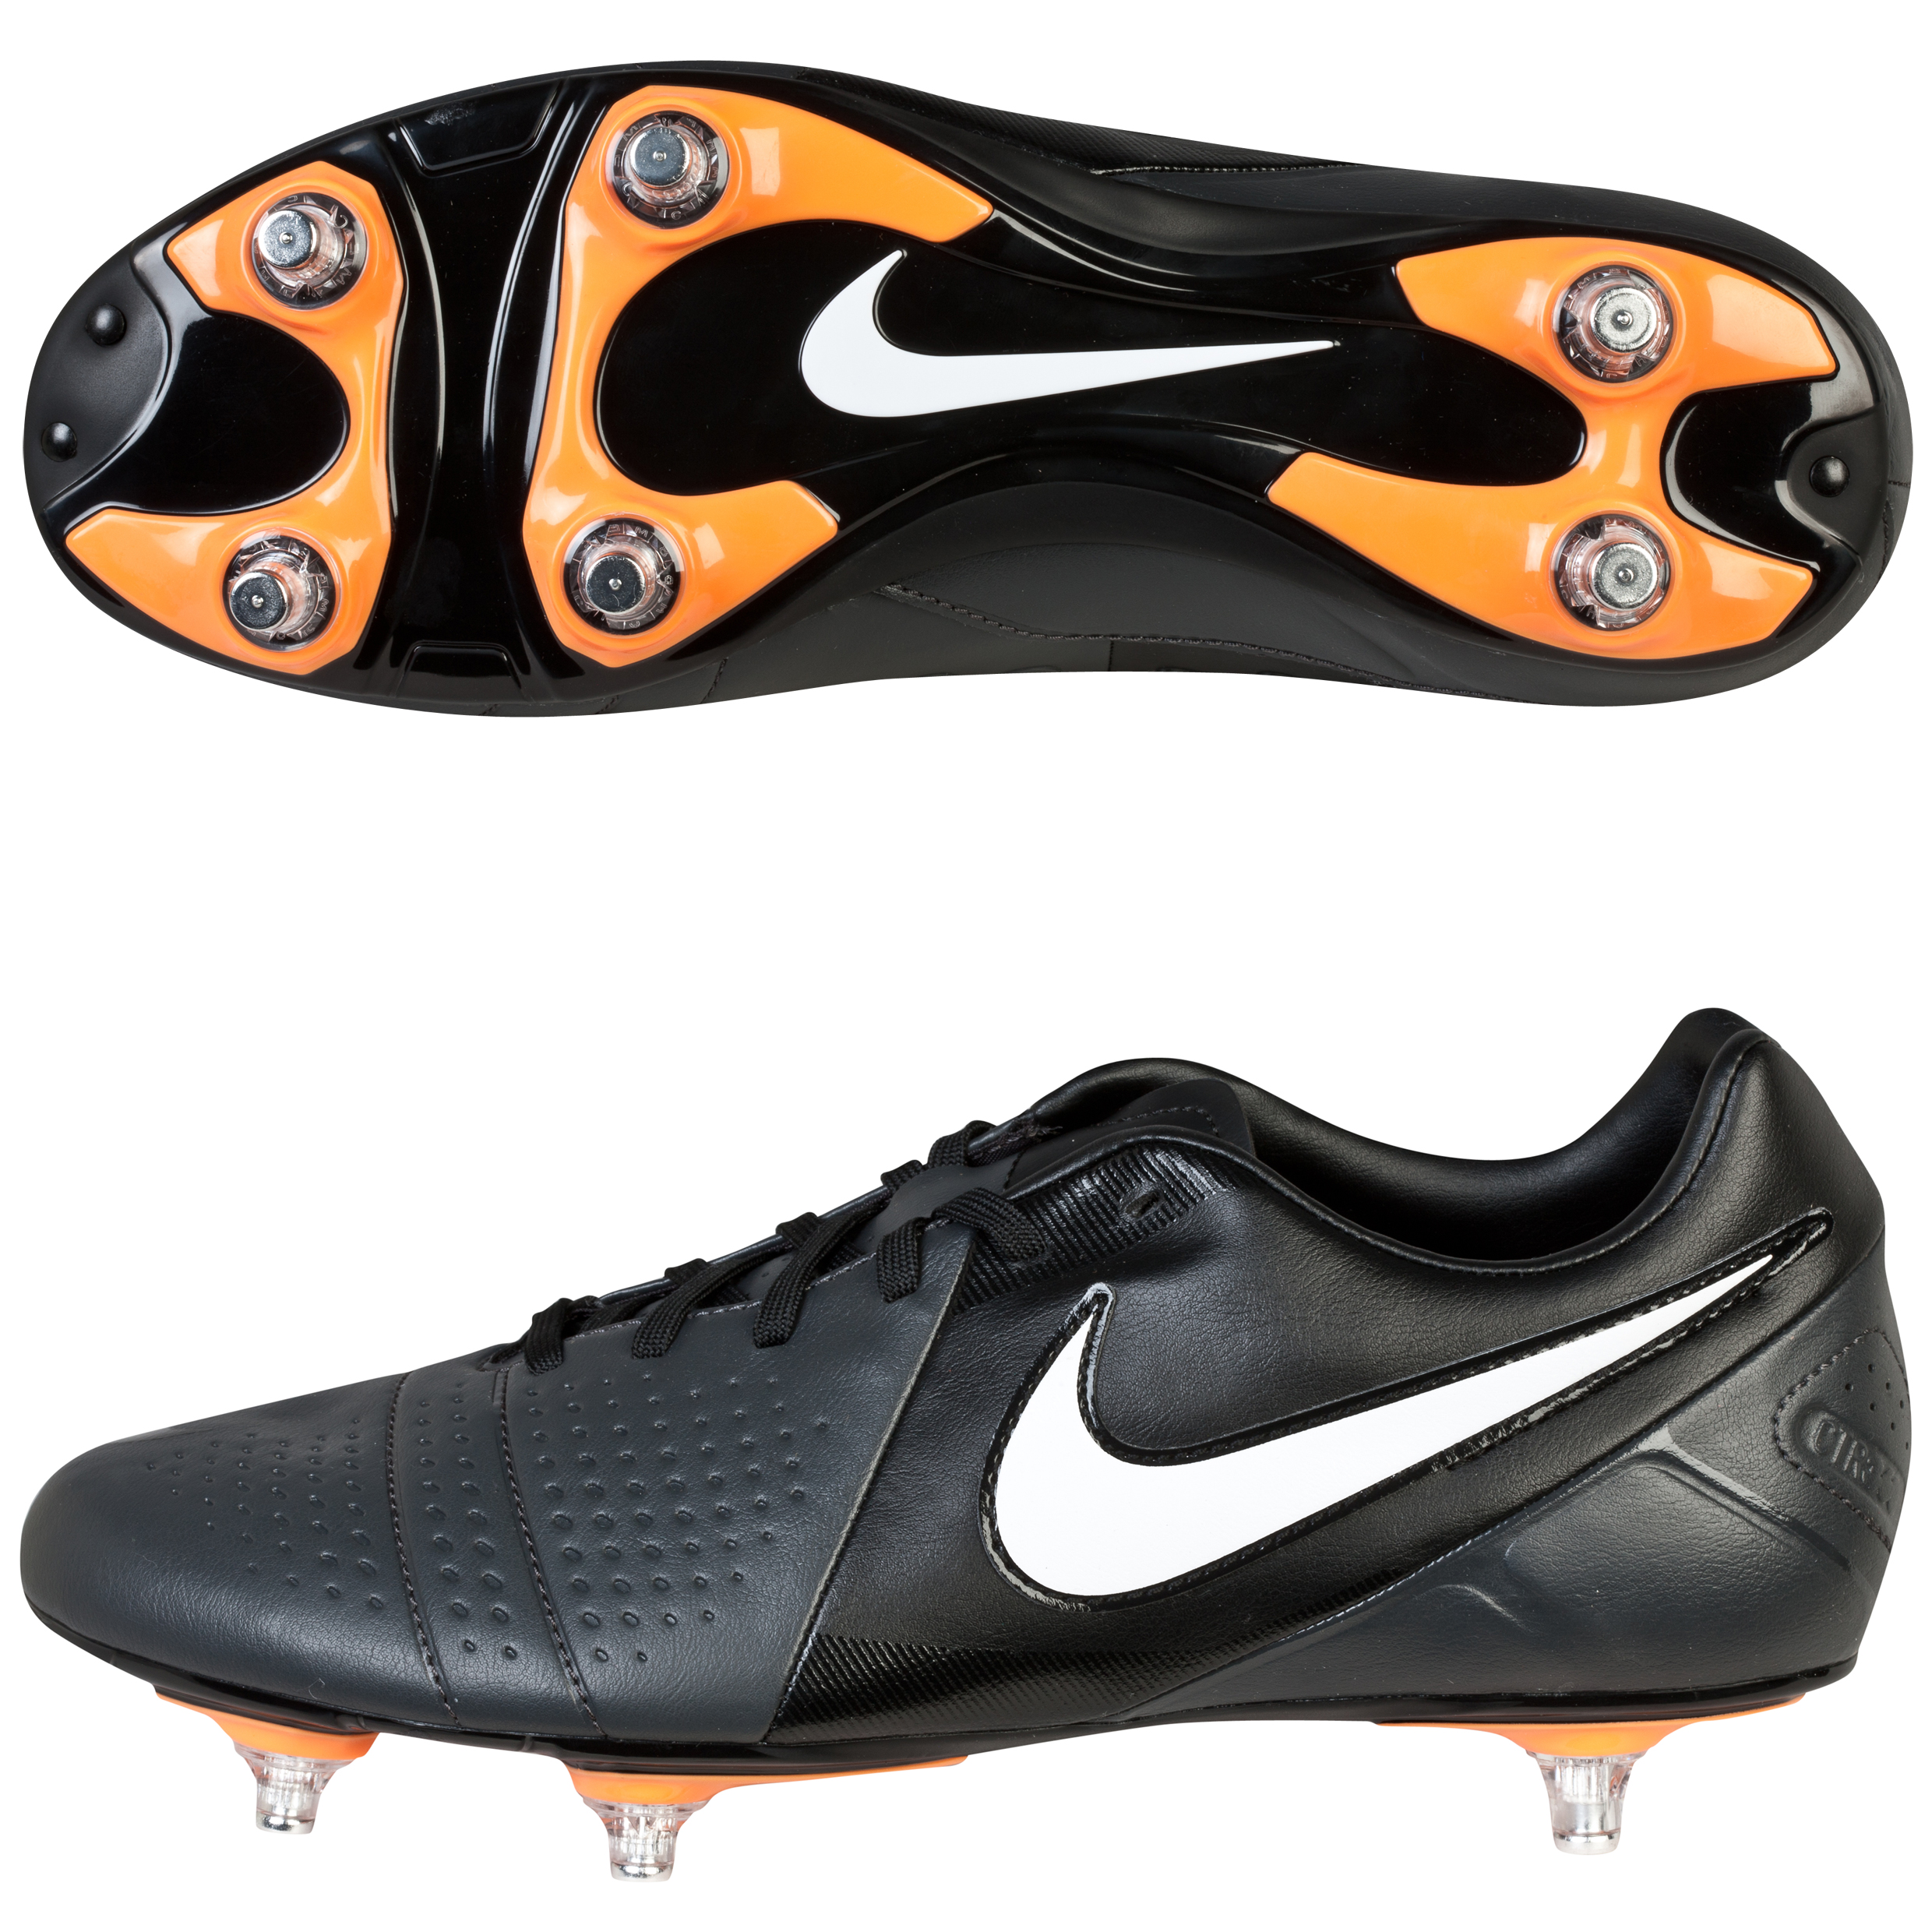 Nike CTR360 Libretto III Soft Ground Football Boots Dk Grey